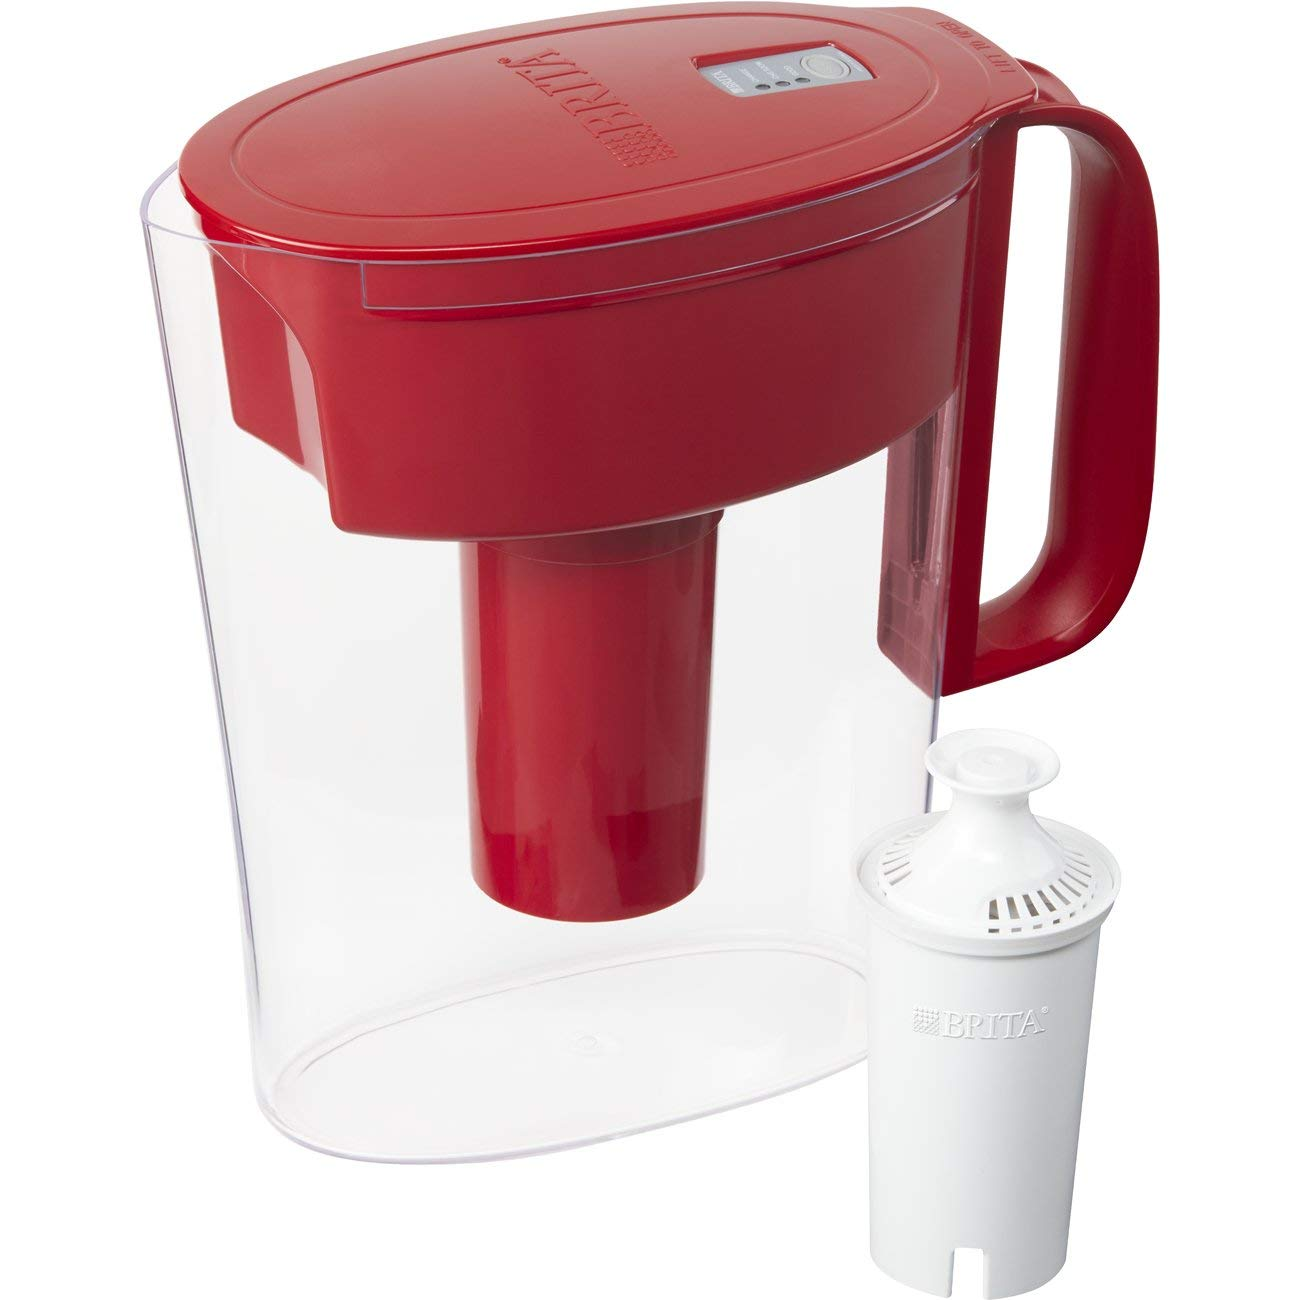 Brita 5 cup water filter pitcher